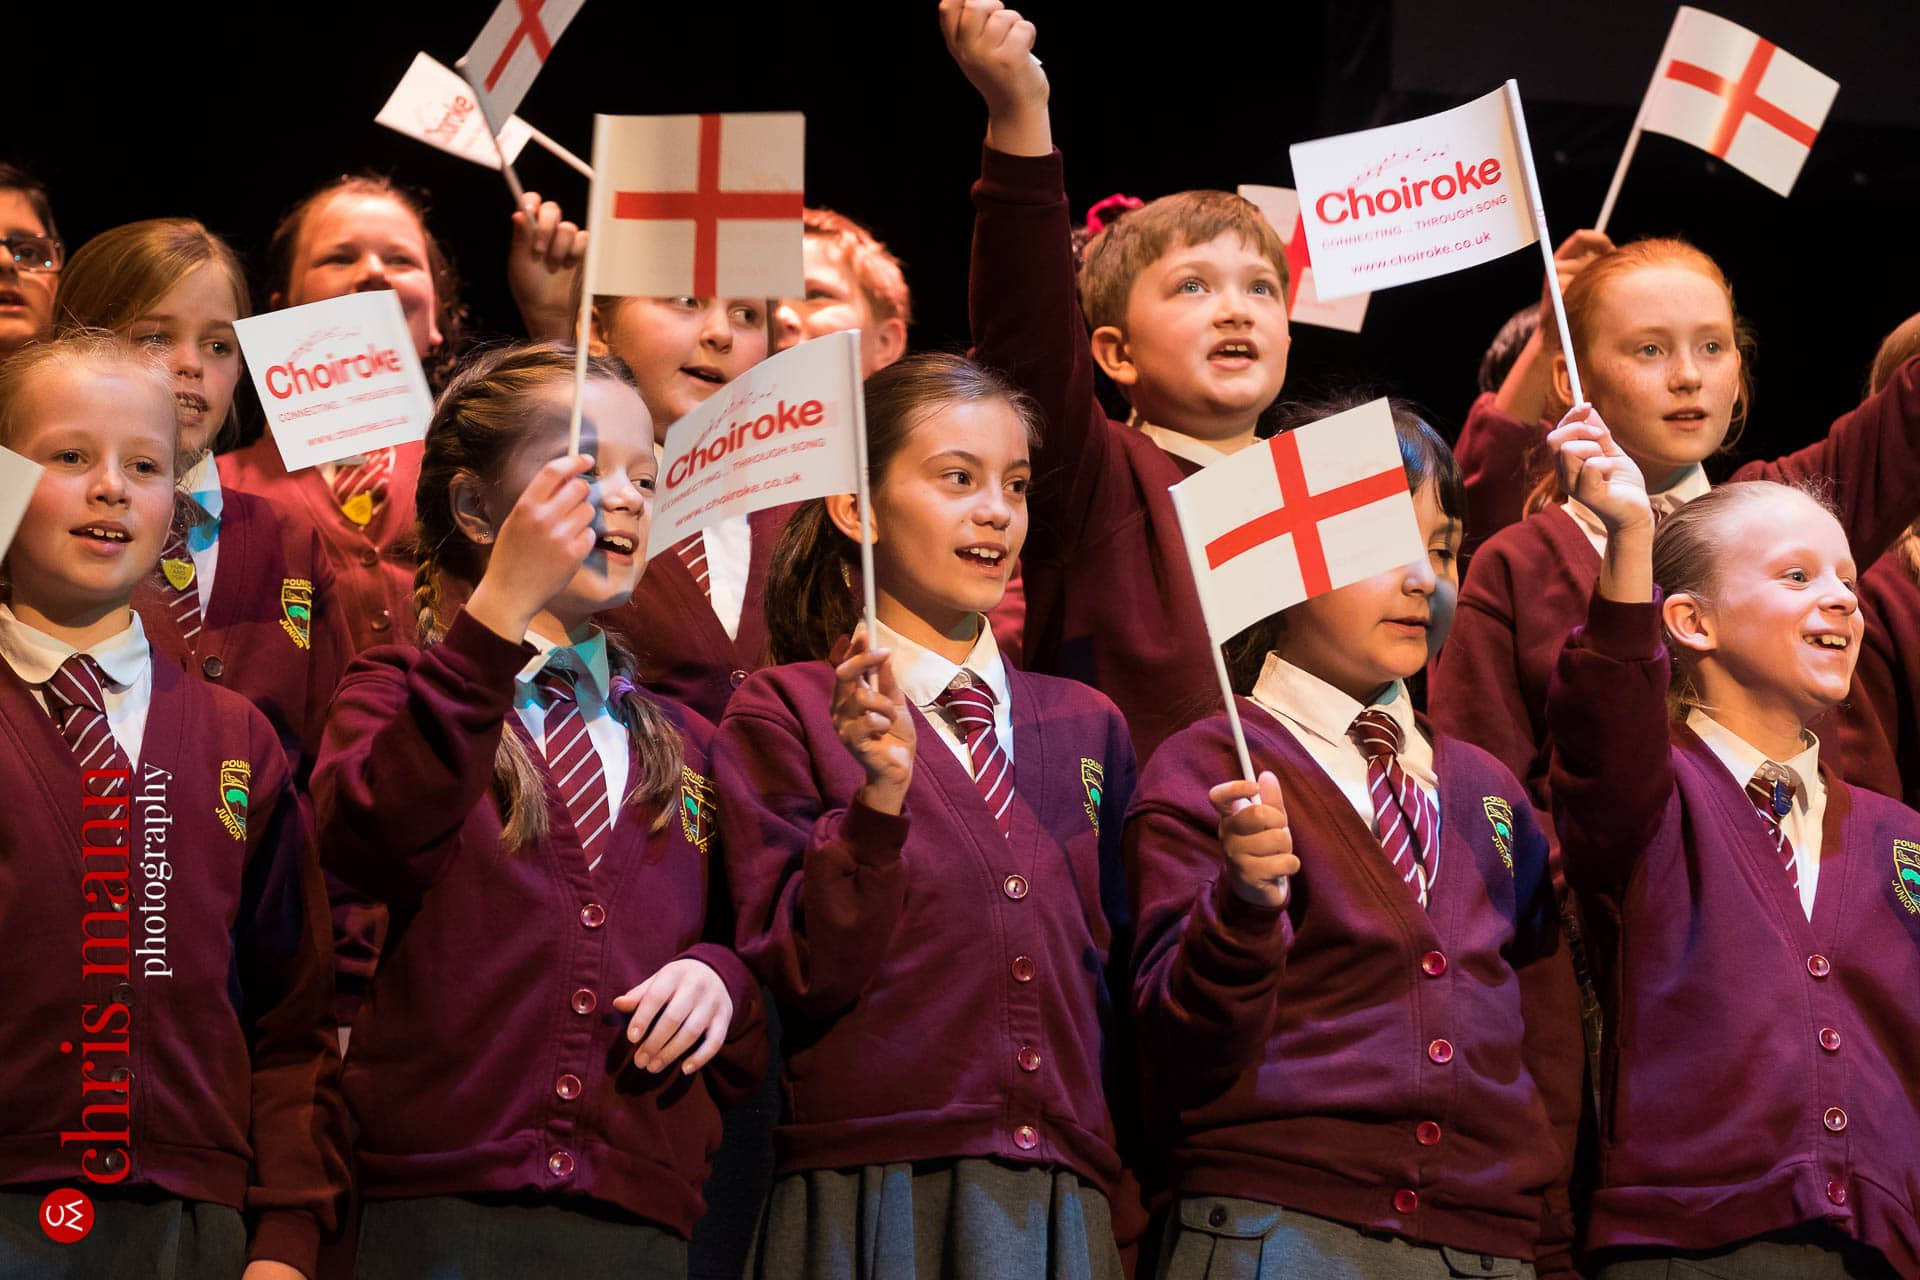 children sing Land of Hope and Glory at Choiroke 2016 concert Dorking Halls